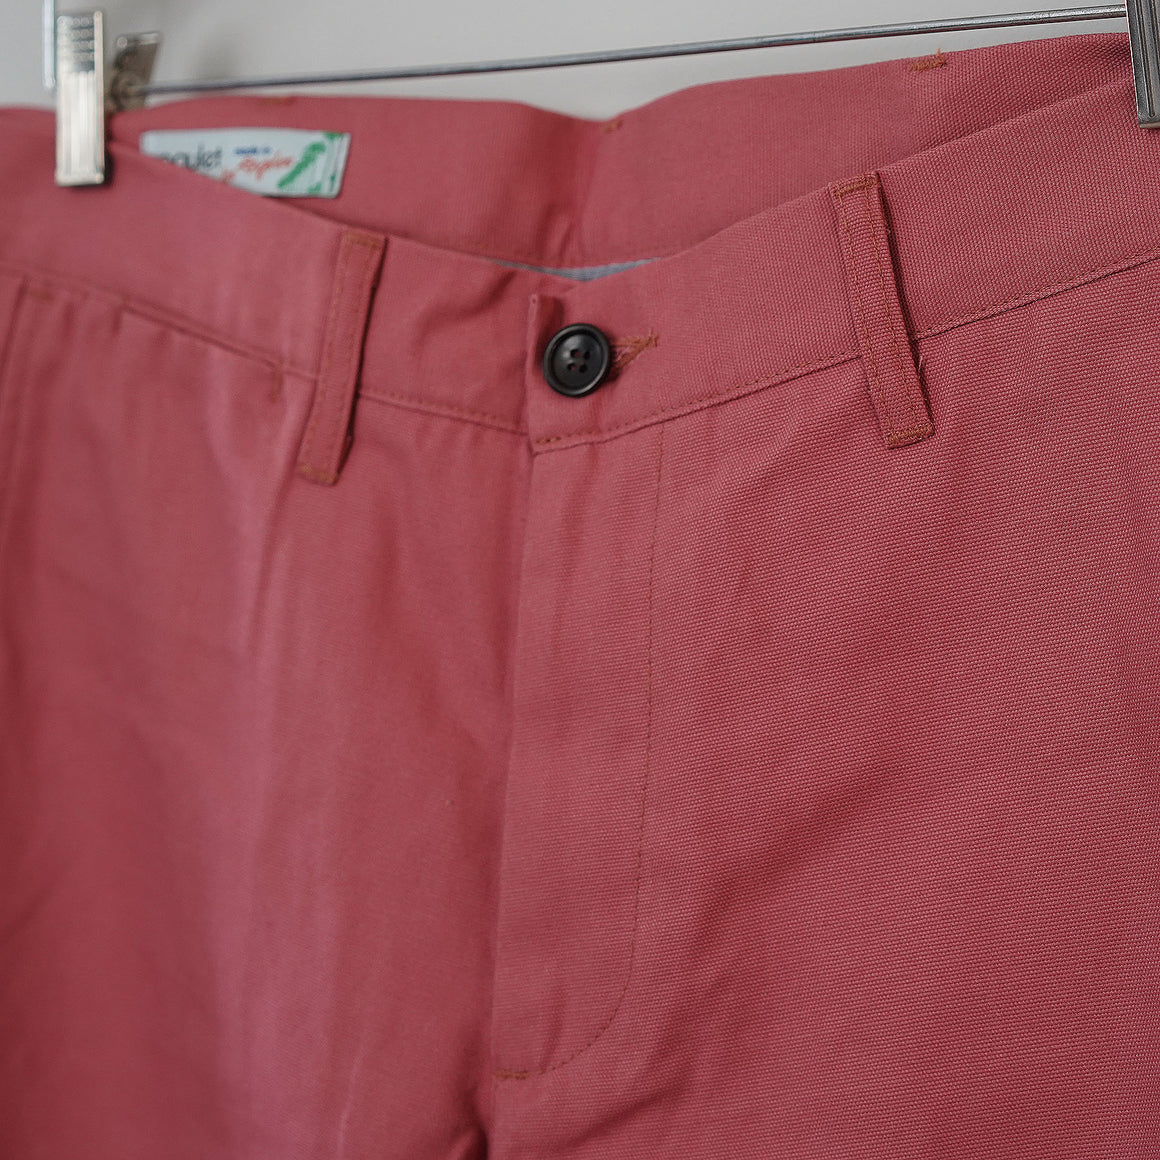 Sample Sale: Rivet Chino in 8oz Nantucket Red Canvas Size 34